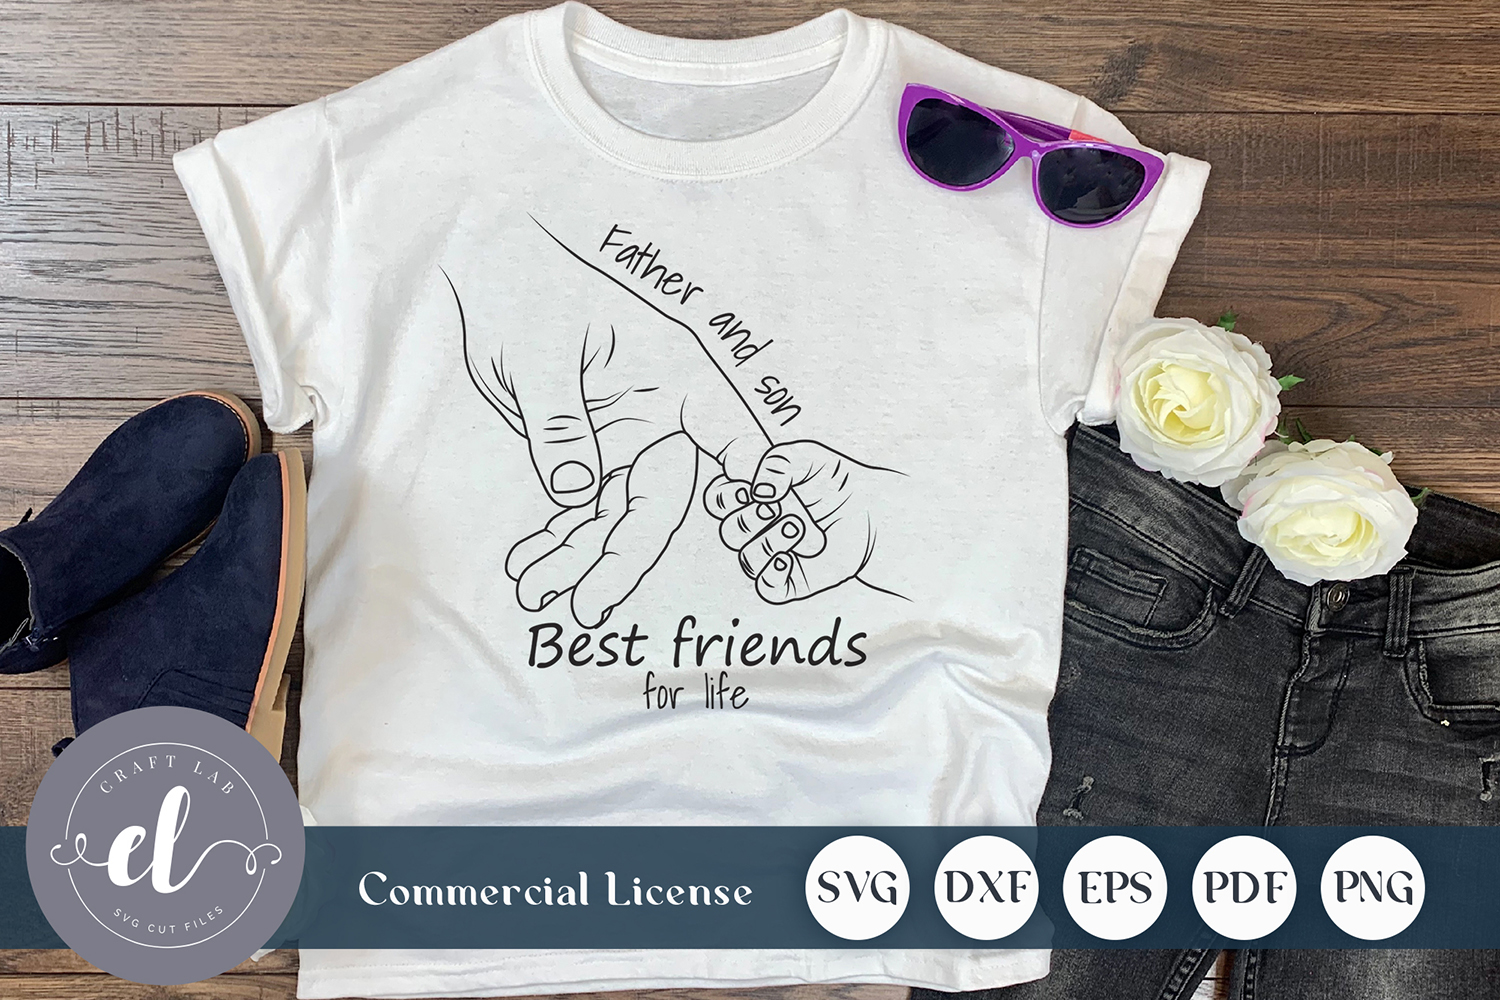 Download Free Father And Son Best Friend For Life Graphic By Craftlabsvg for Cricut Explore, Silhouette and other cutting machines.